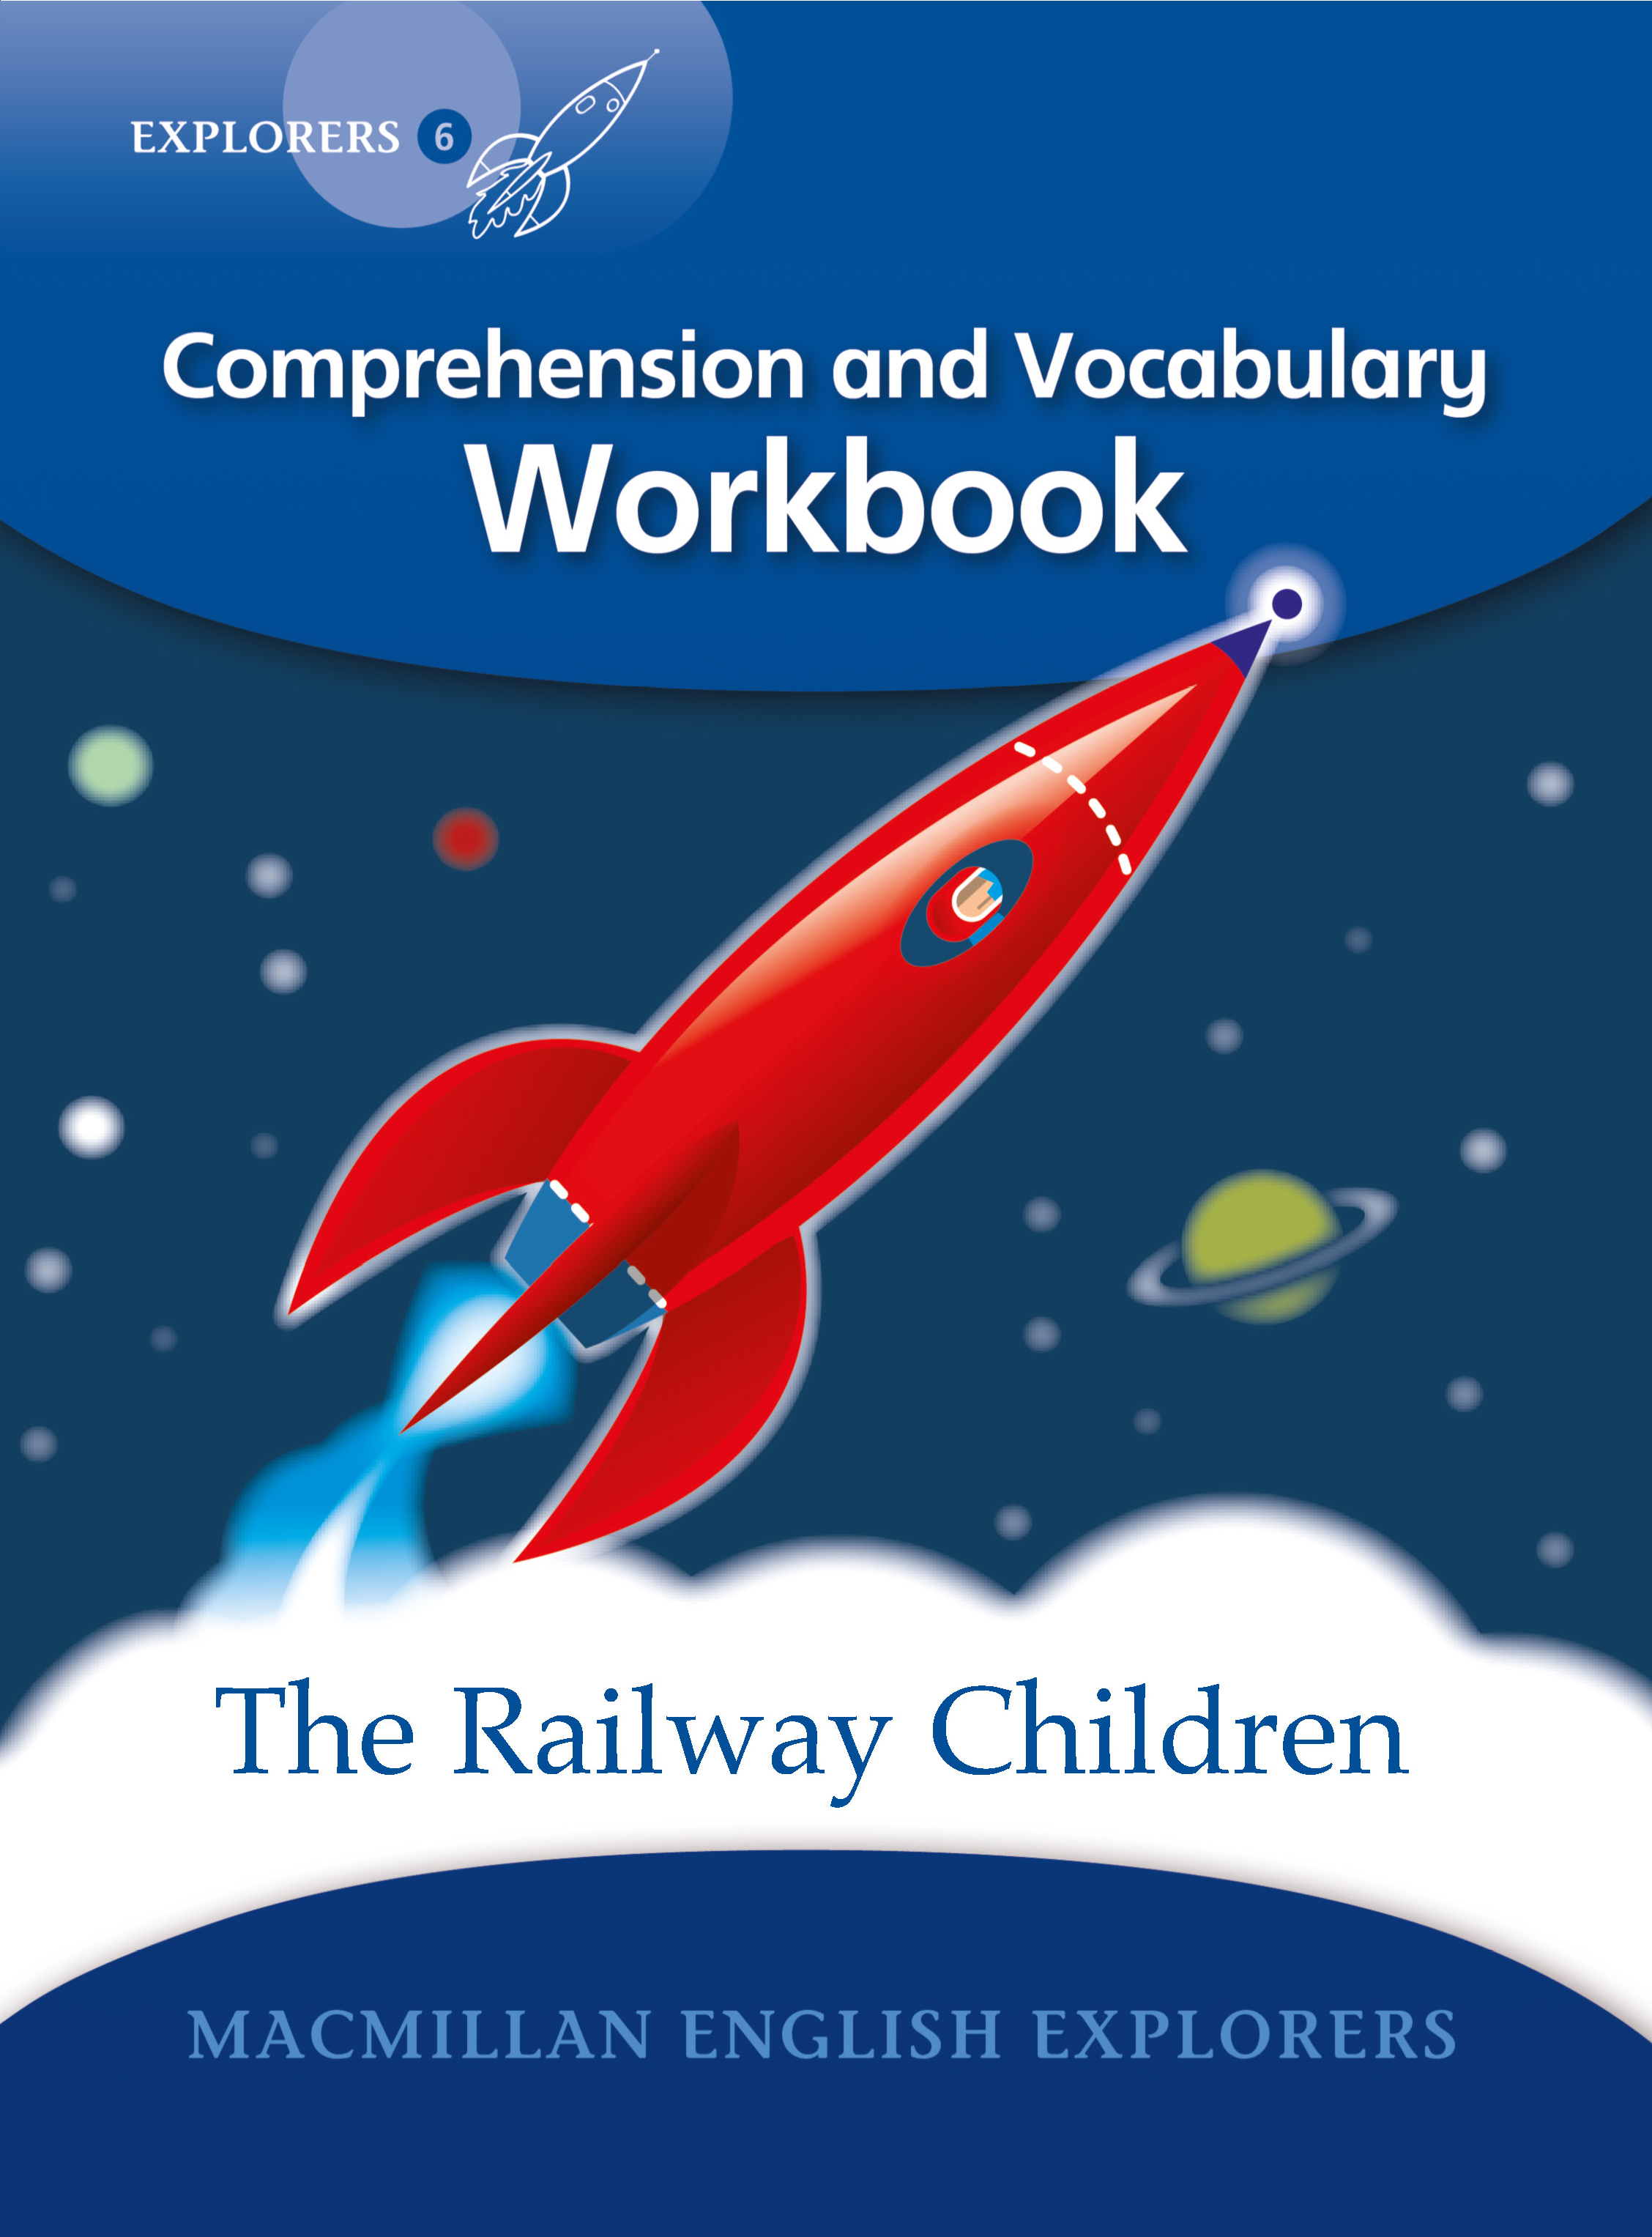 Explorers 6: The Railway Children Workbook